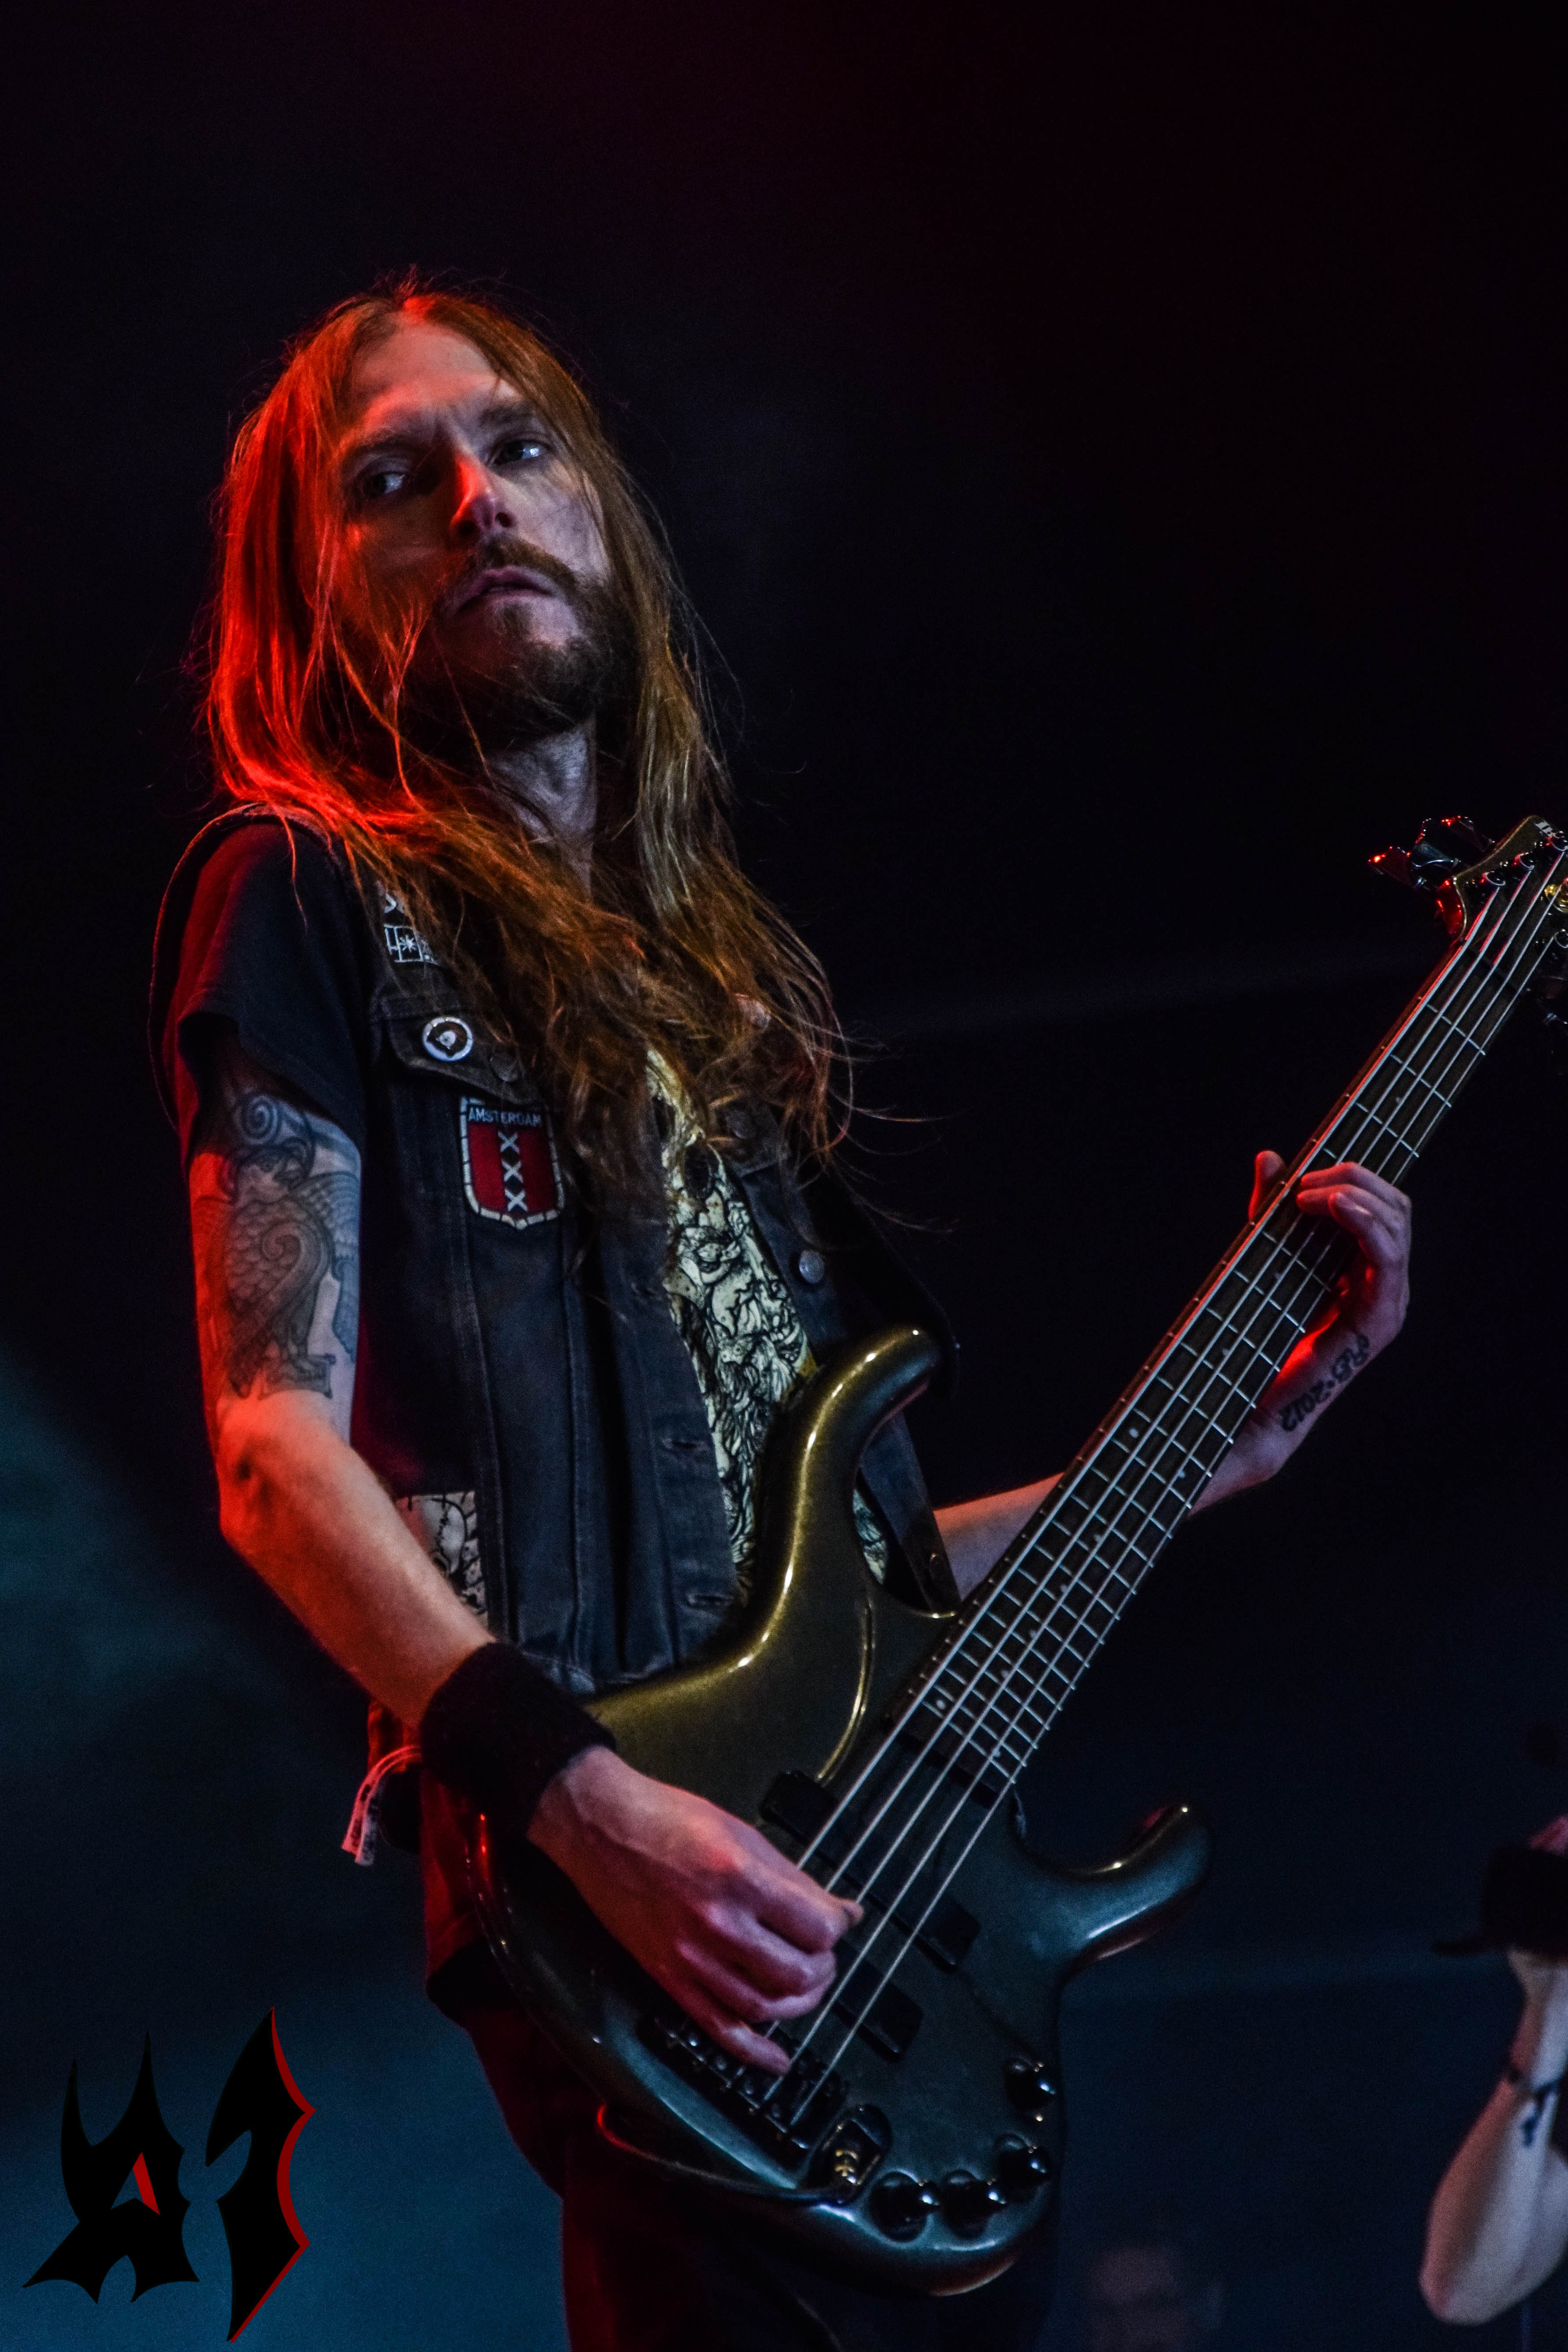 Hellfest - Day 1 - Dopethrone 9